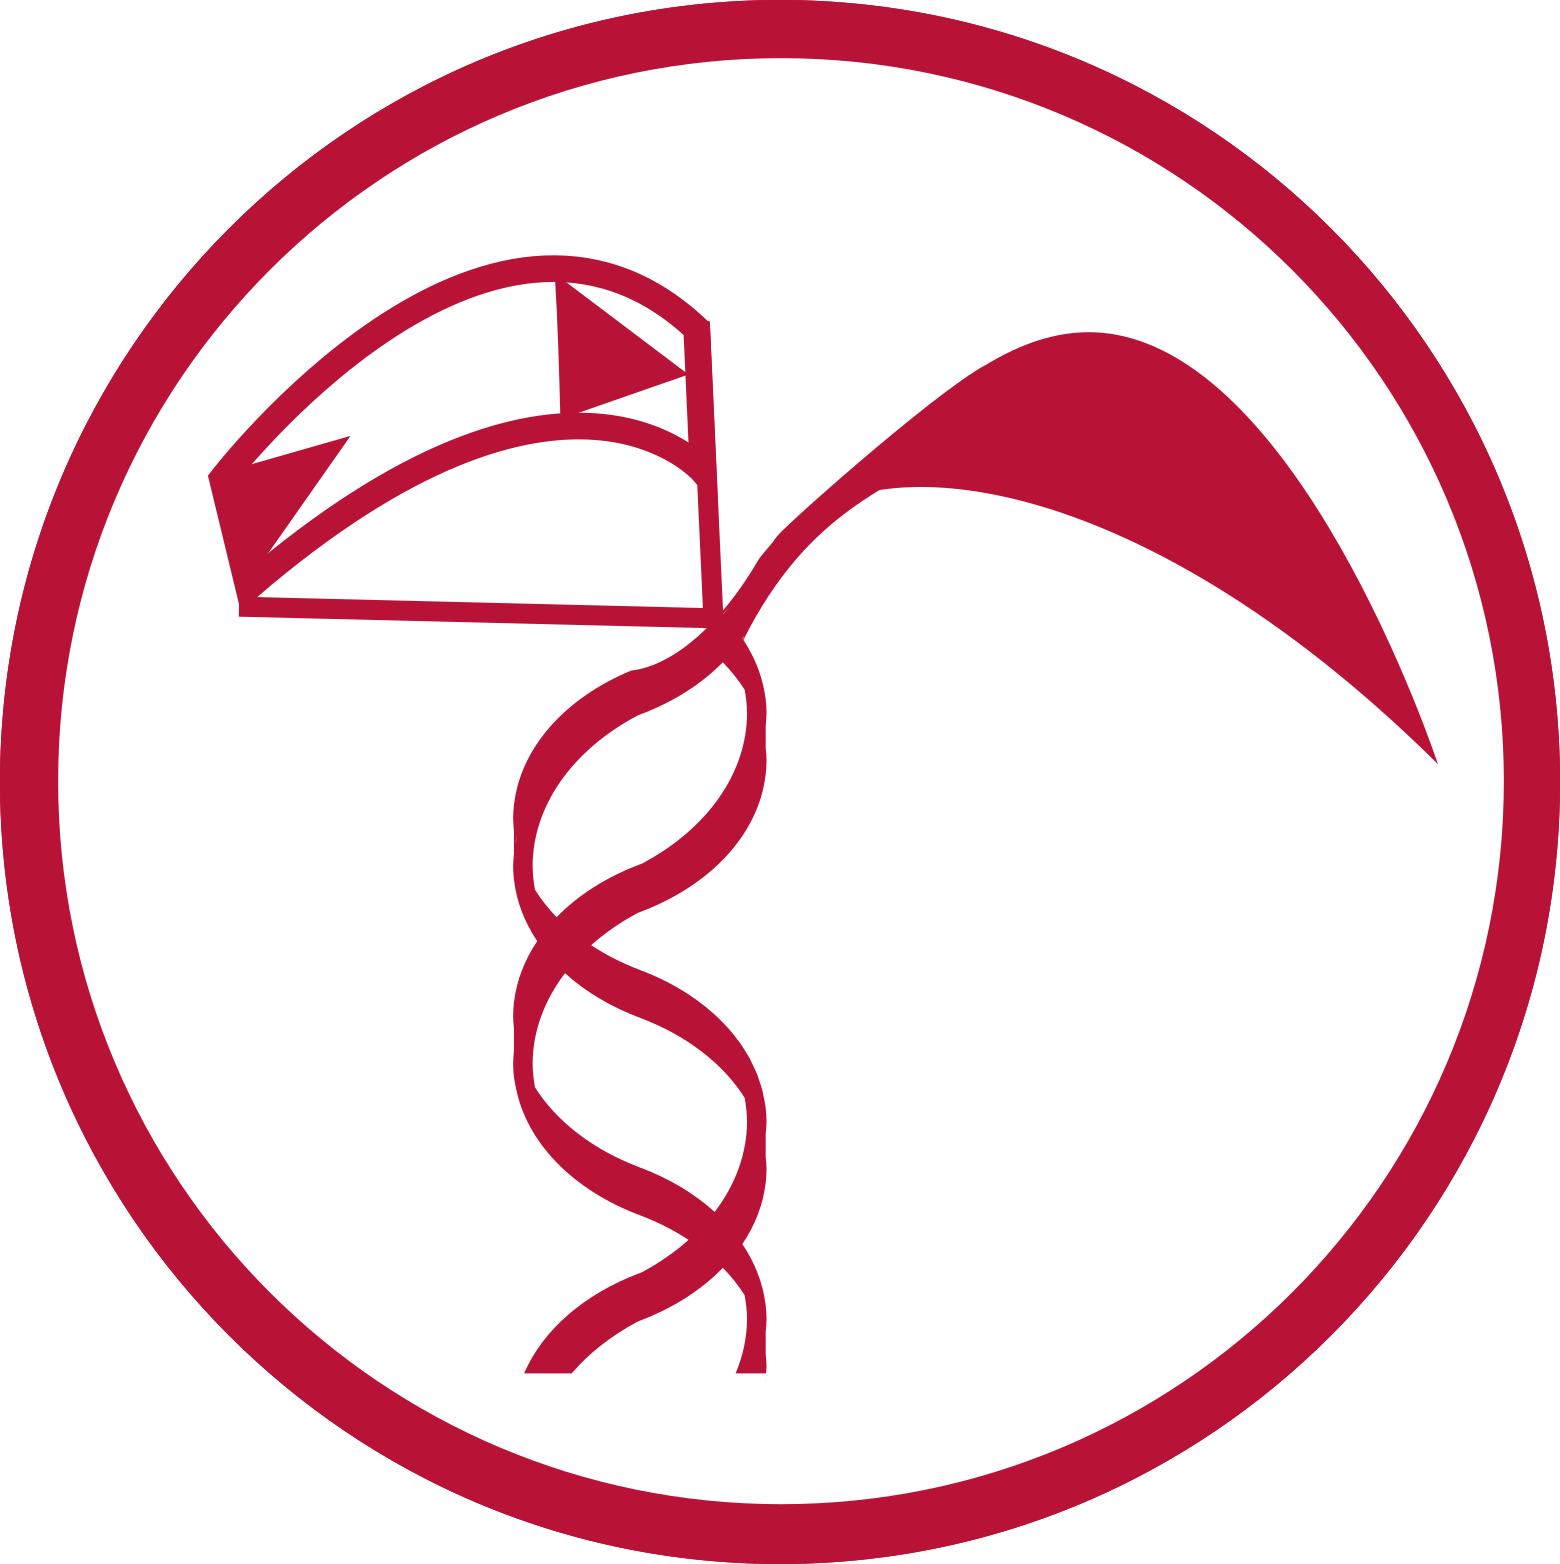 Anderson Genomics Lab logo representing a maize seedling with a DNA double-helix stem, one plant leaf, and one leaf illustrating a LTR retrotransposon inserting into the DNA